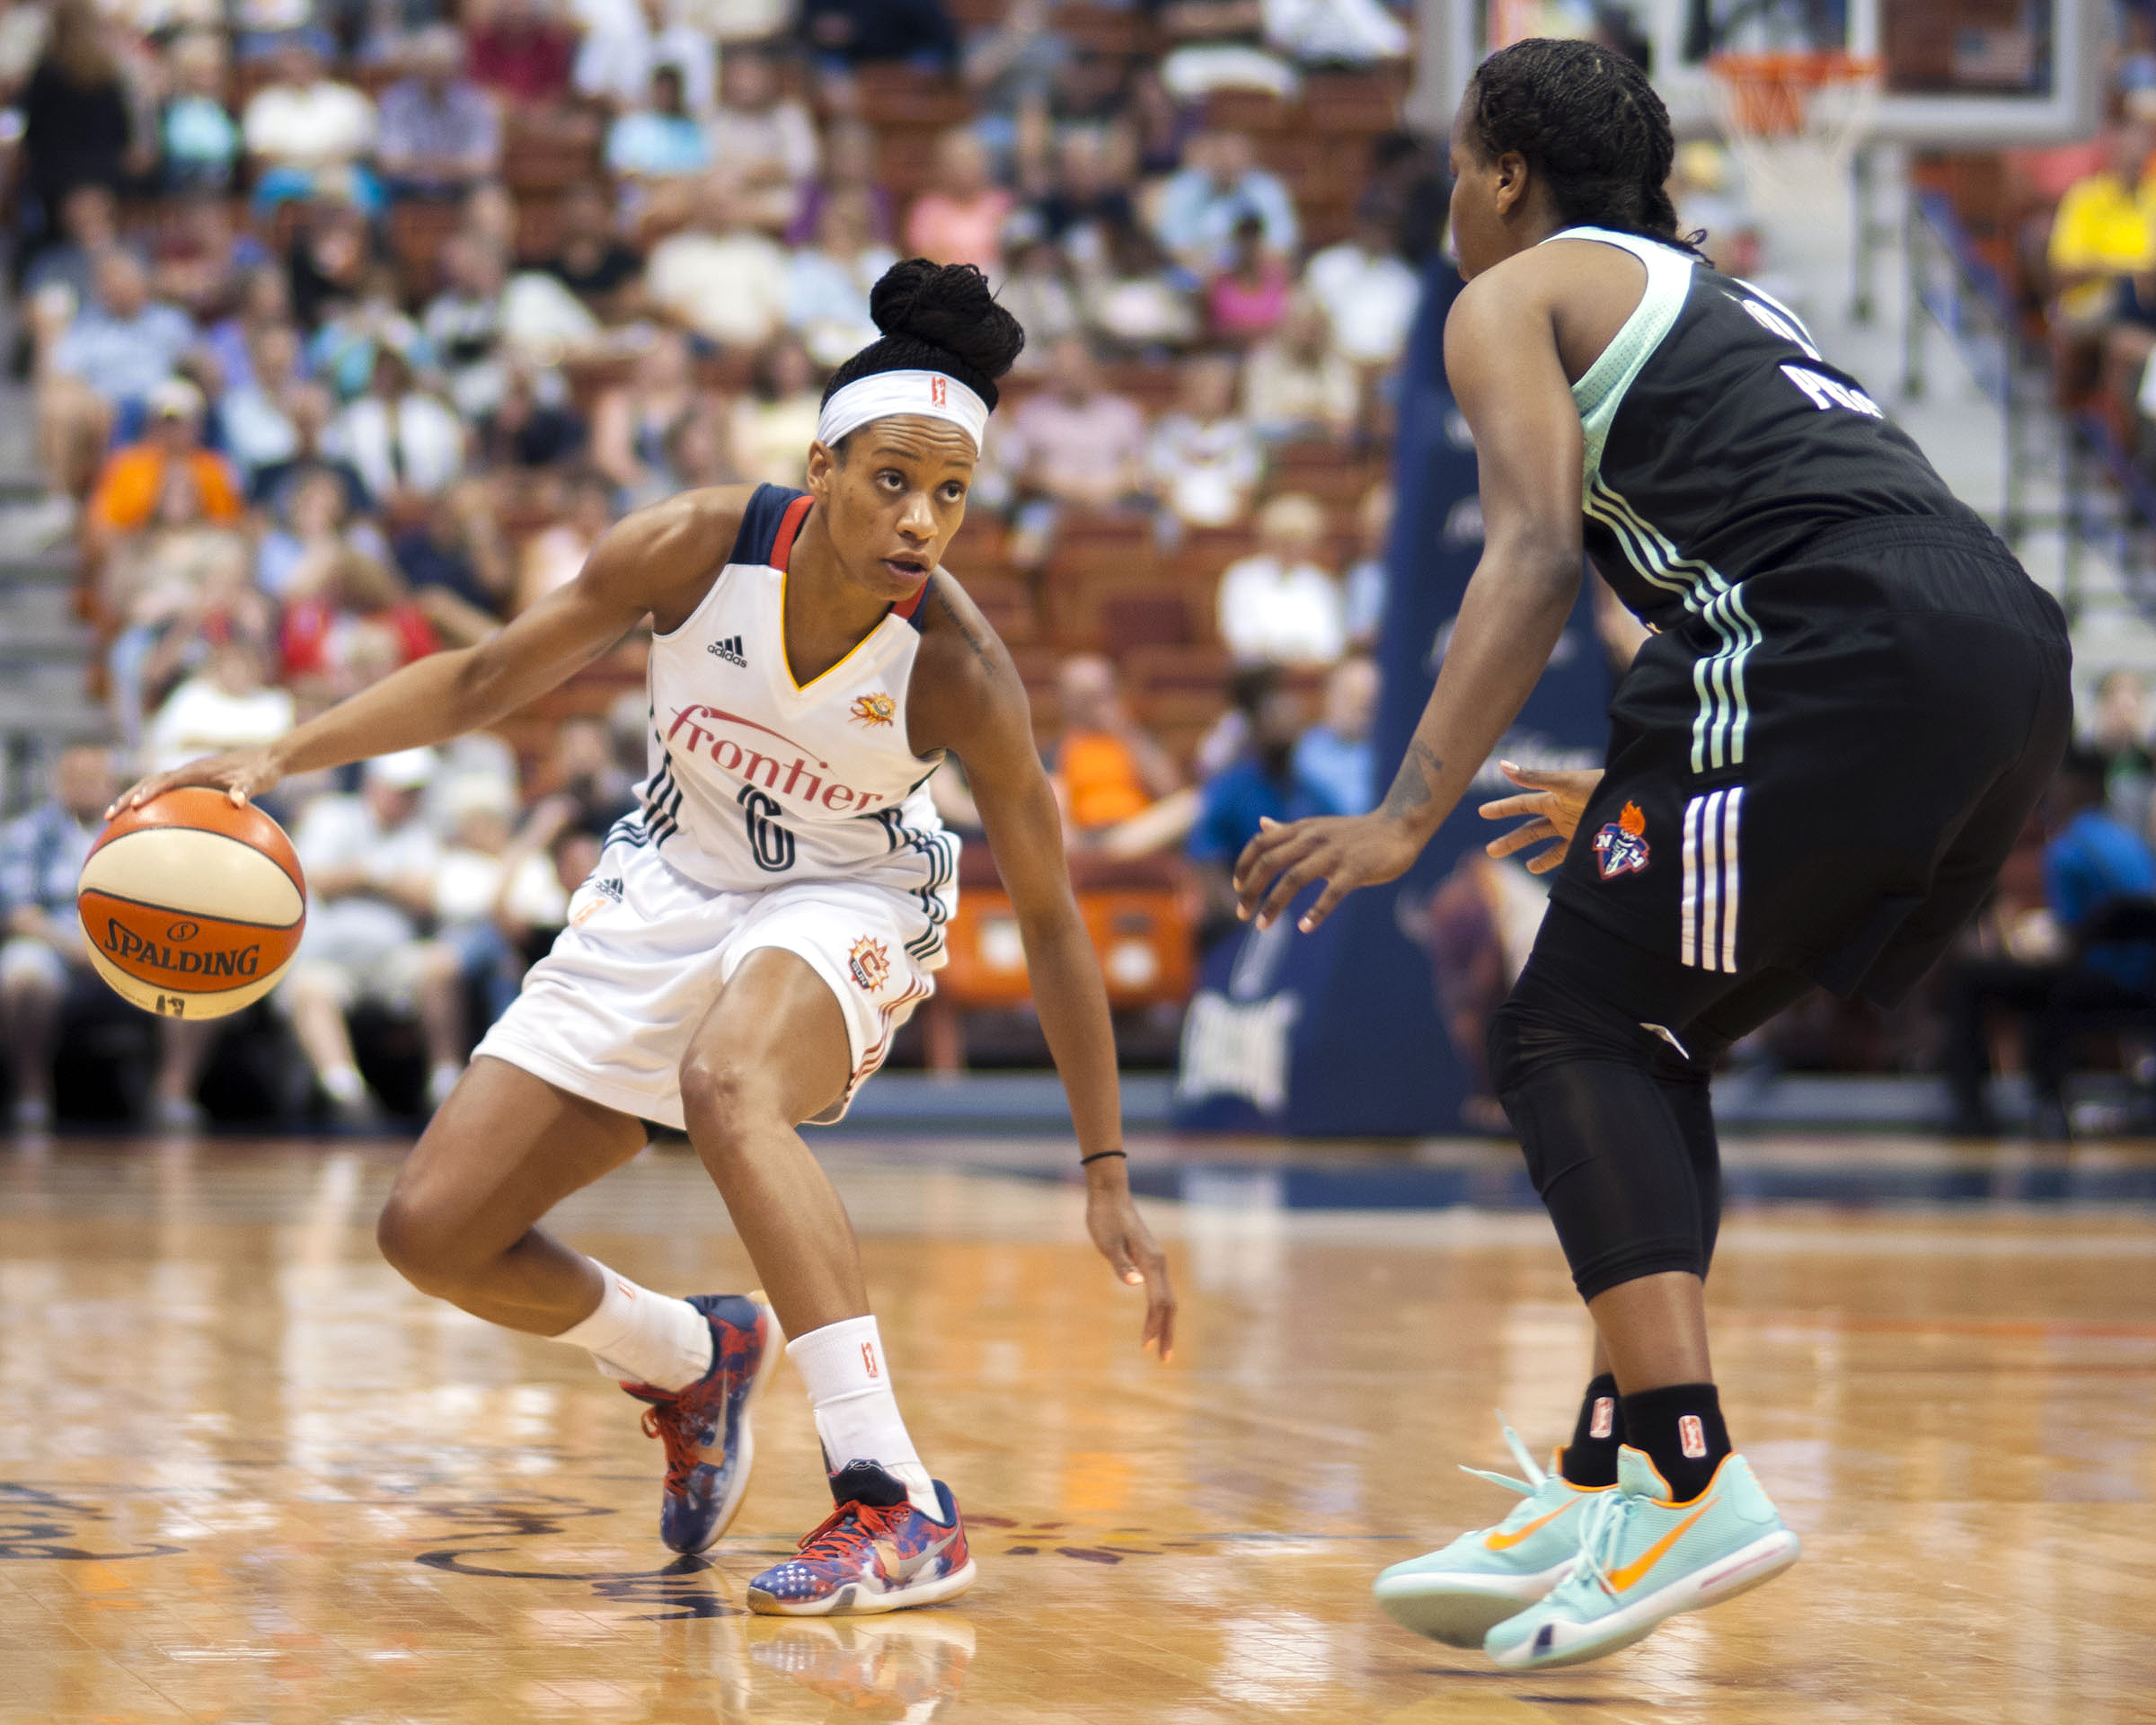 UNCASVILLE, CT - AUGUST 14: Jasmine Thomas #6 of the Connecticut Sun handles the ball against the New York Liberty on August 14, 2015 at the Mohegan Sun Arena in Uncasville, Connecticut. (Photo by Stephen Pellegrino/NBAE via Getty Images)